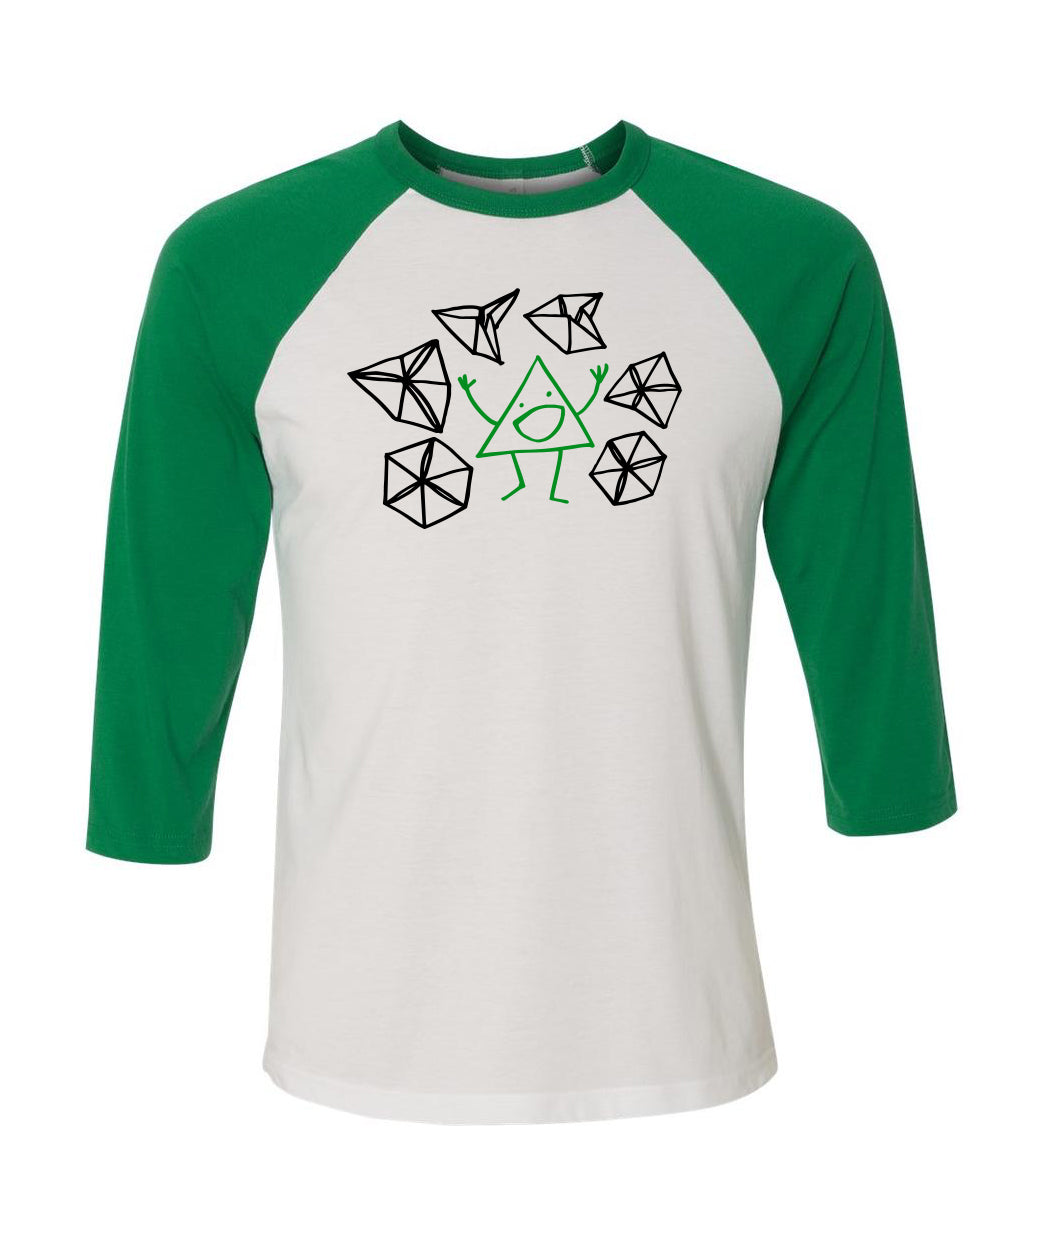 How To Make A Hexaflexagon YOUTH Shirt